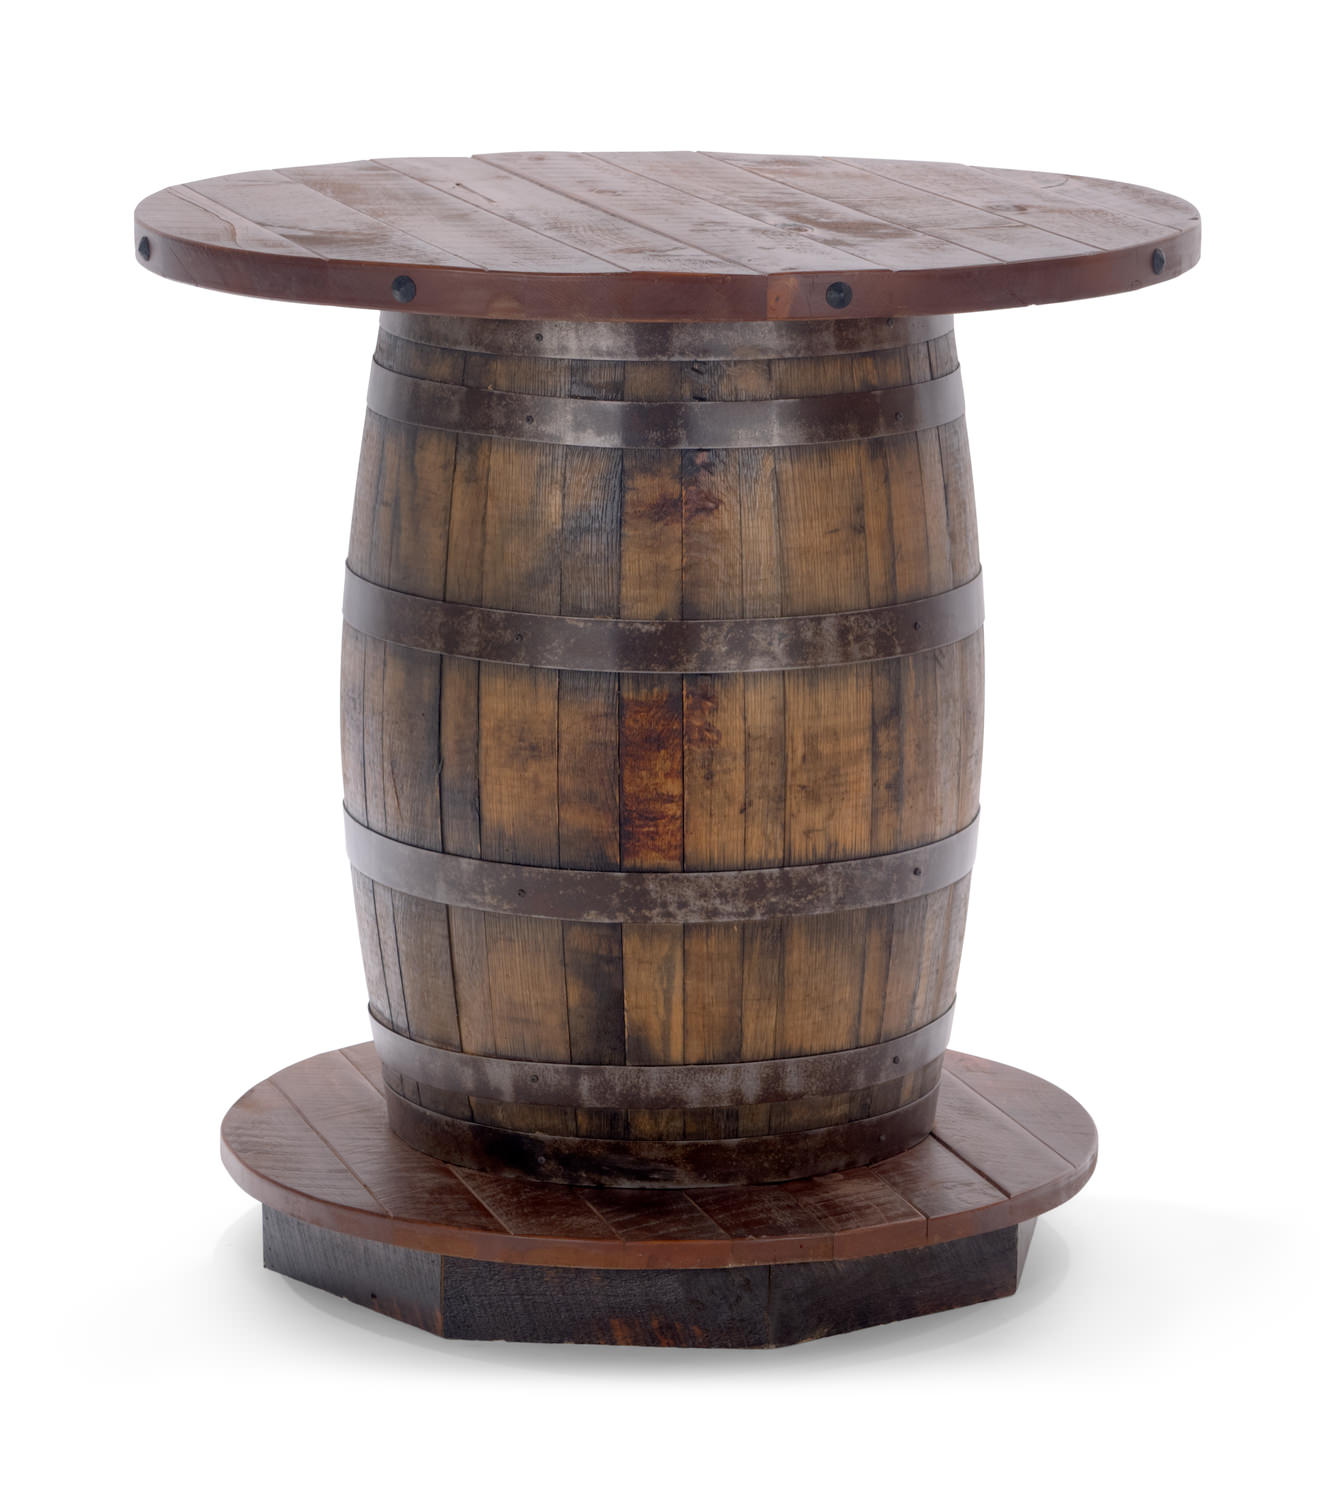 Old Fitz Reclaimed Whiskey Barrel table HOM Furniture : 96294 2 from www.homfurniture.com size 1336 x 1500 jpeg 133kB